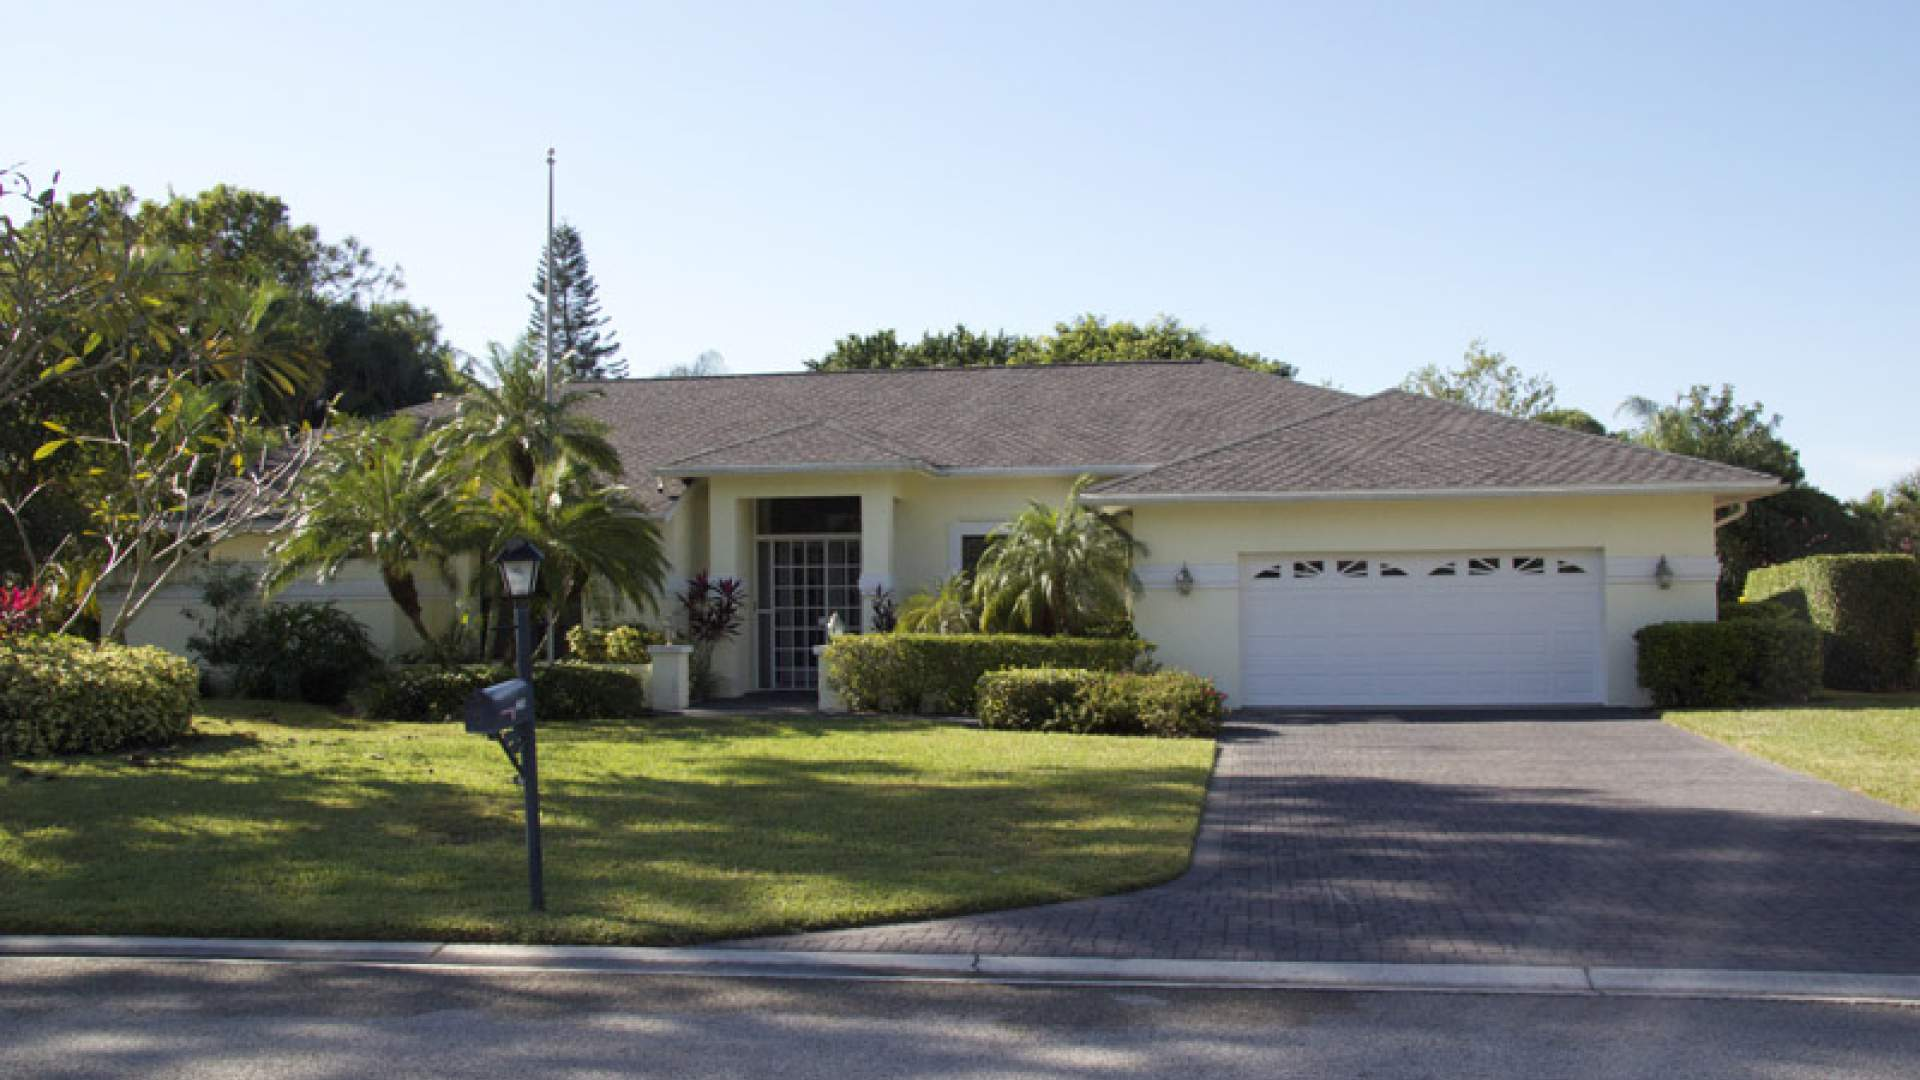 Villa Barbara is located in the pristine community Kings Lake on David Blvd in Naples